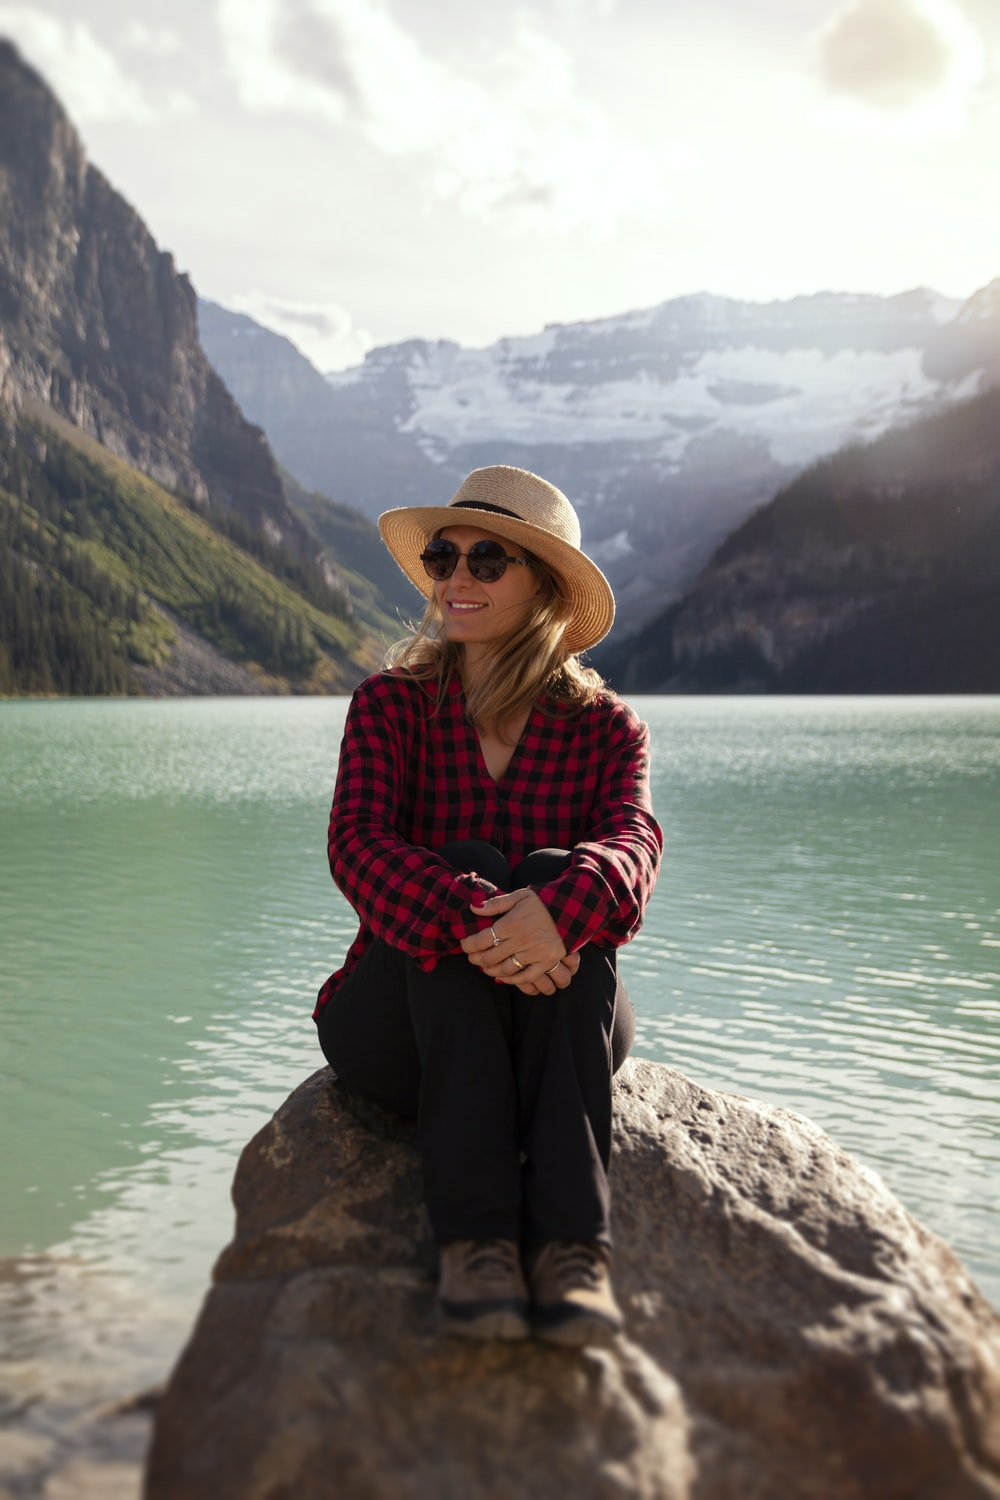 woman in red and white plaid dress shirt and black pants sitting on rock near body